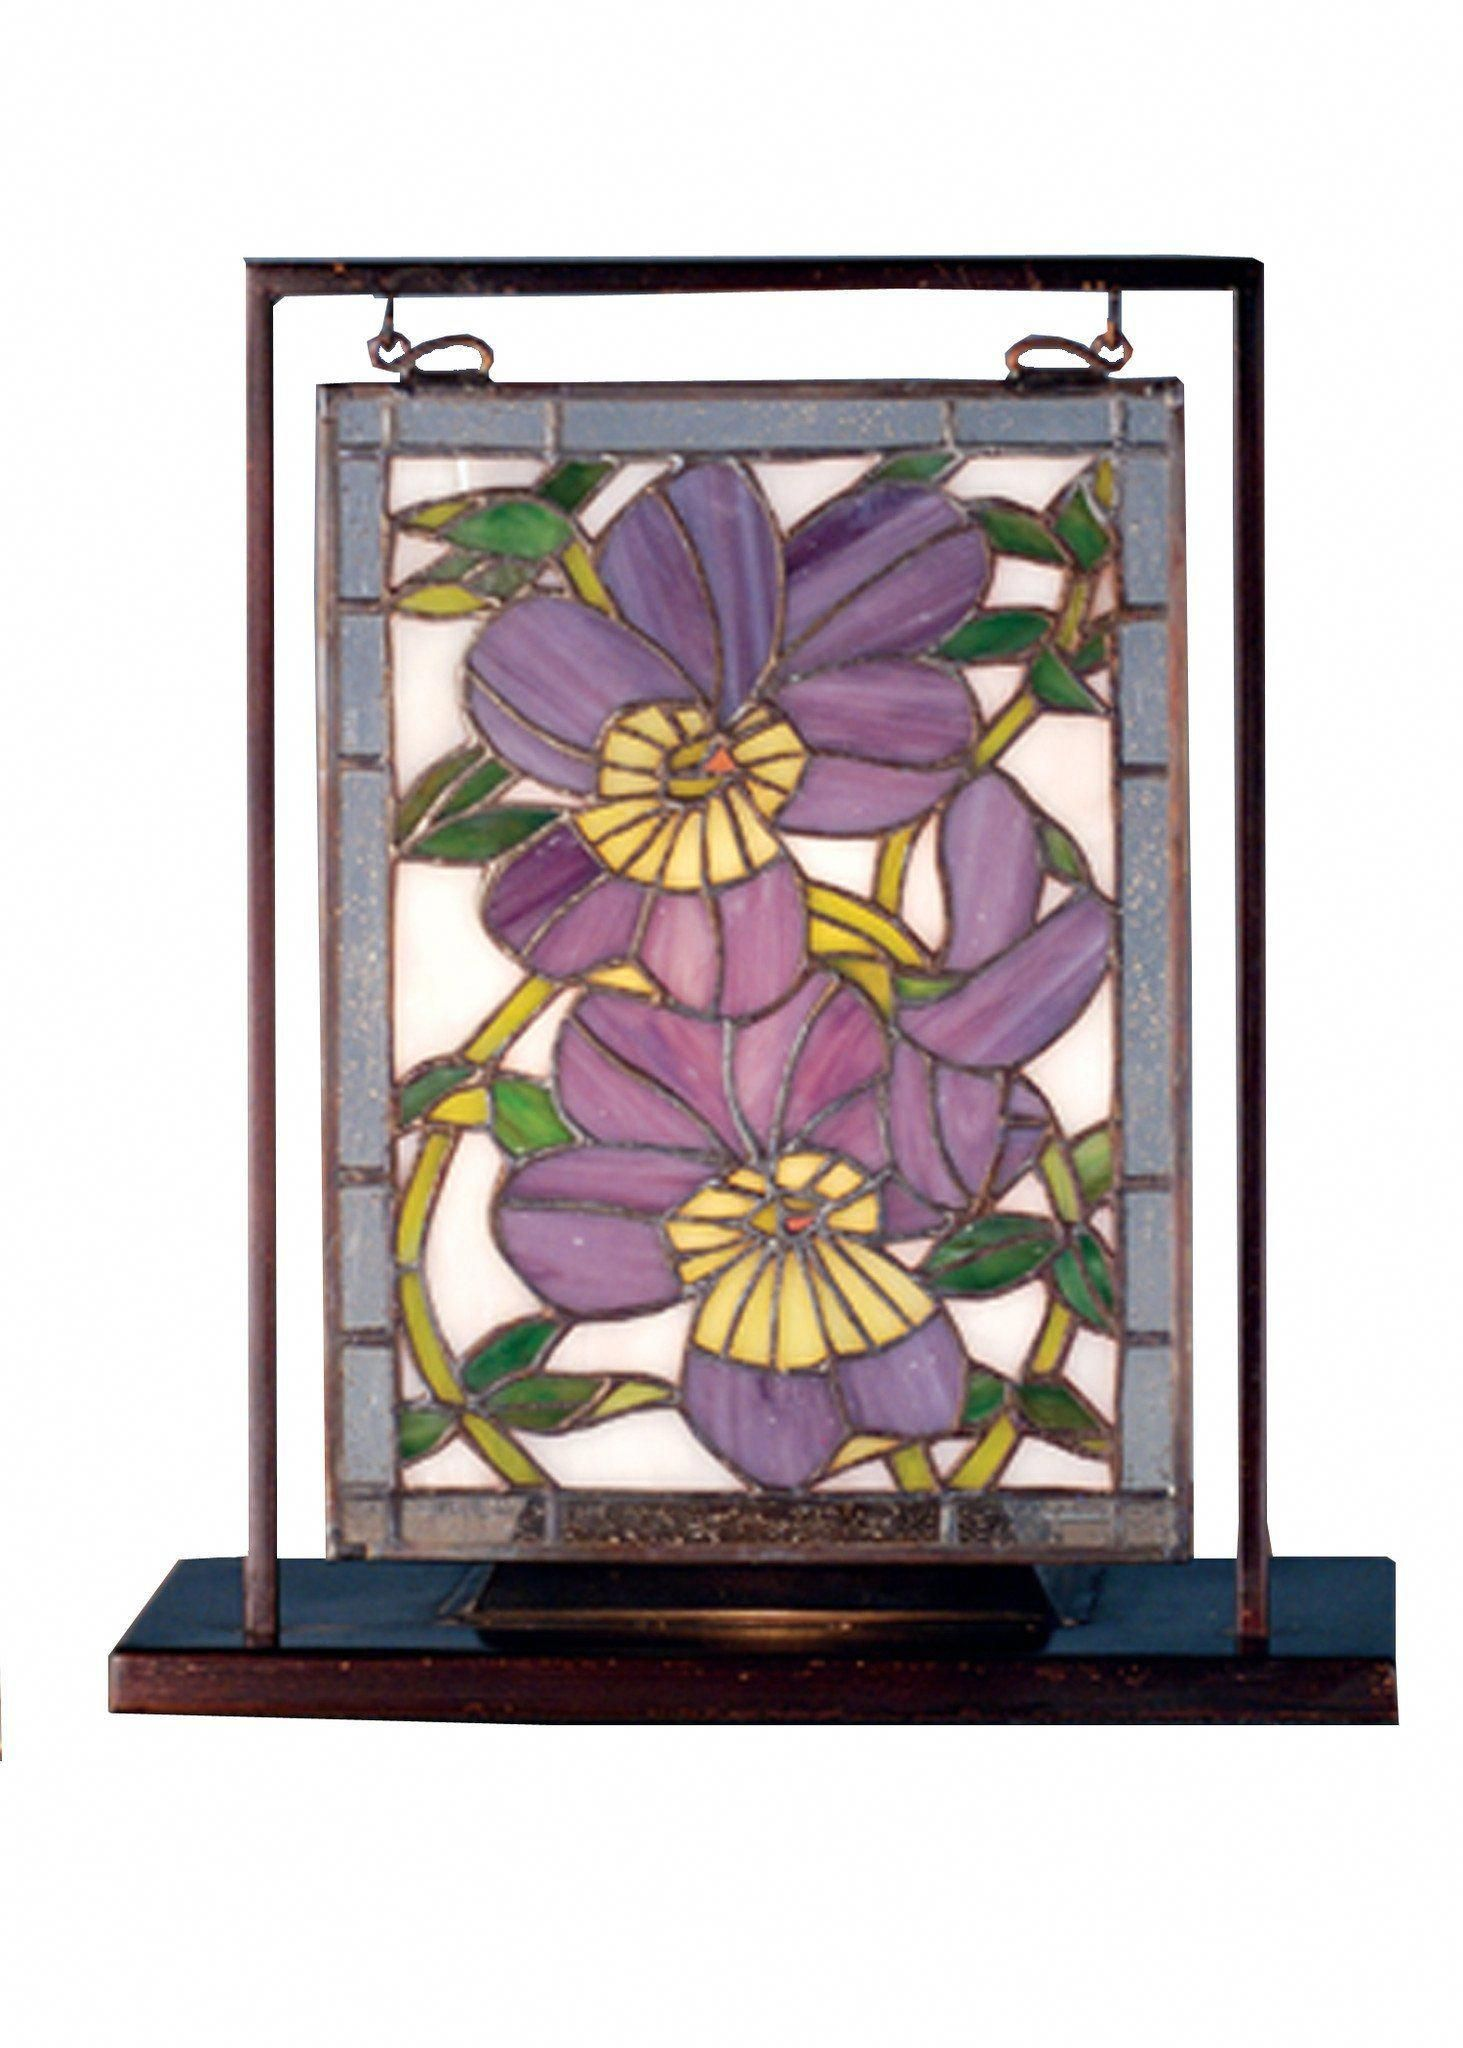 Glass Art Deco Art Glass Partition Stained Glass Art Glass Wall Art Glass Art